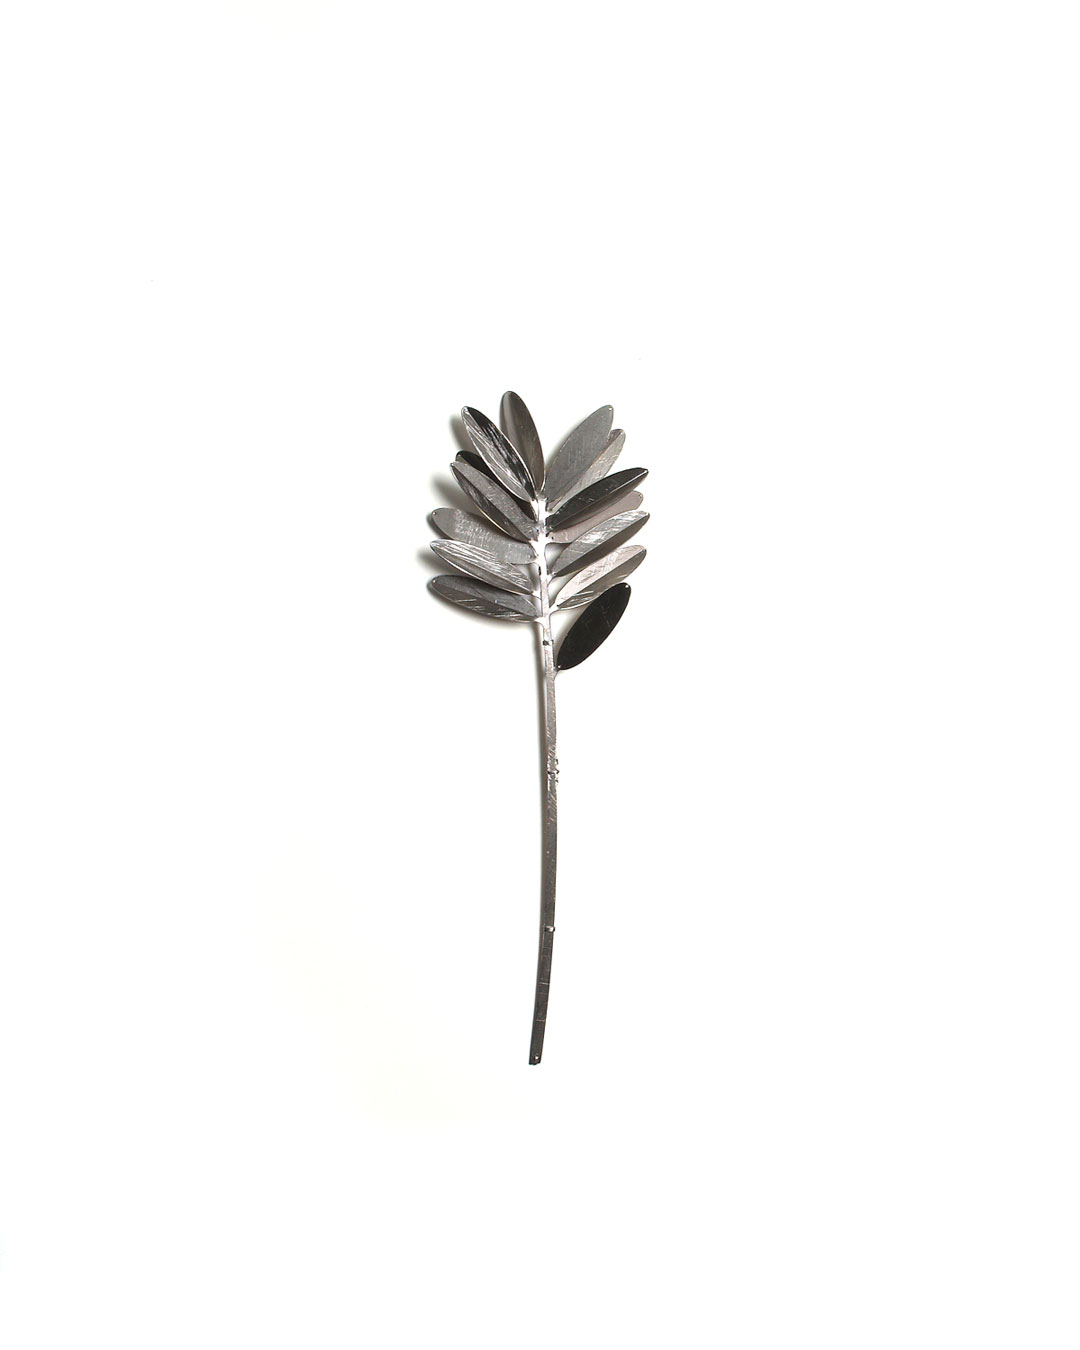 Junwon Jung, untitled, 2011, brooch; titanium, stainless steel, 200 x 80 x 40 mm, €1090